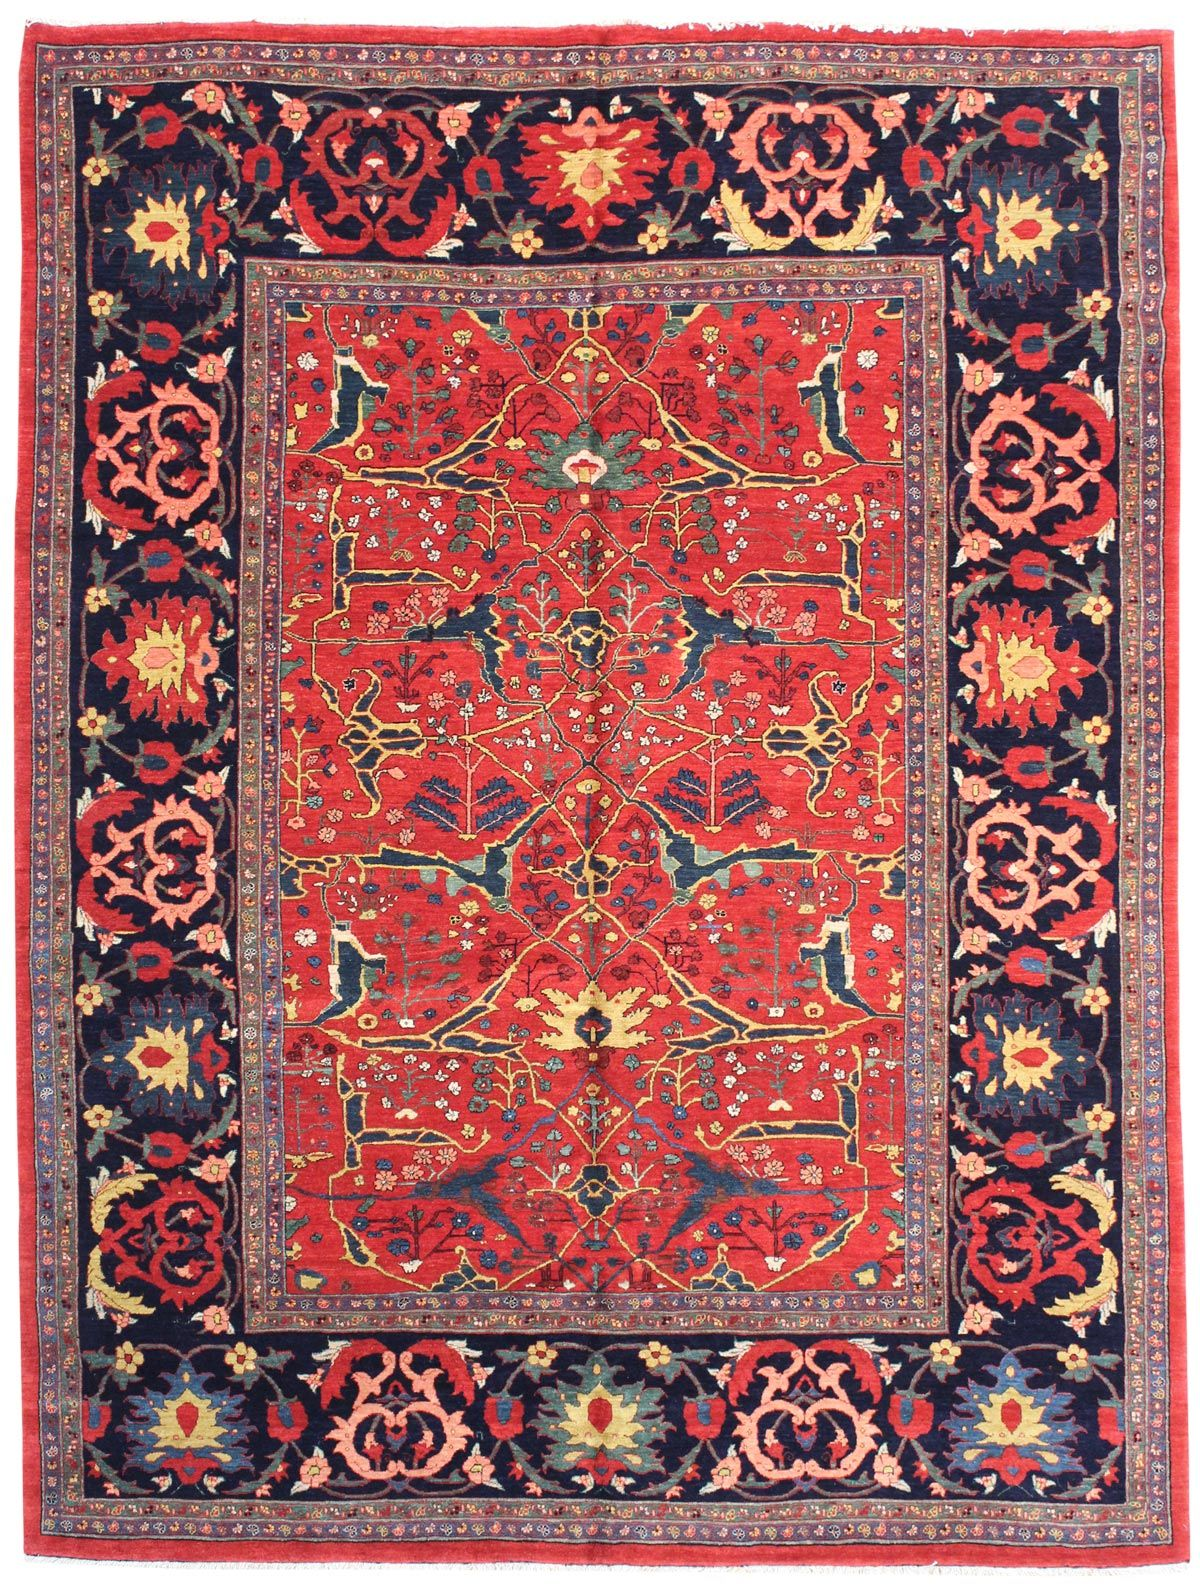 Asian Carpet Geometric Oriental Rugs Gallery Persian Bijar Rug Hand Knotted